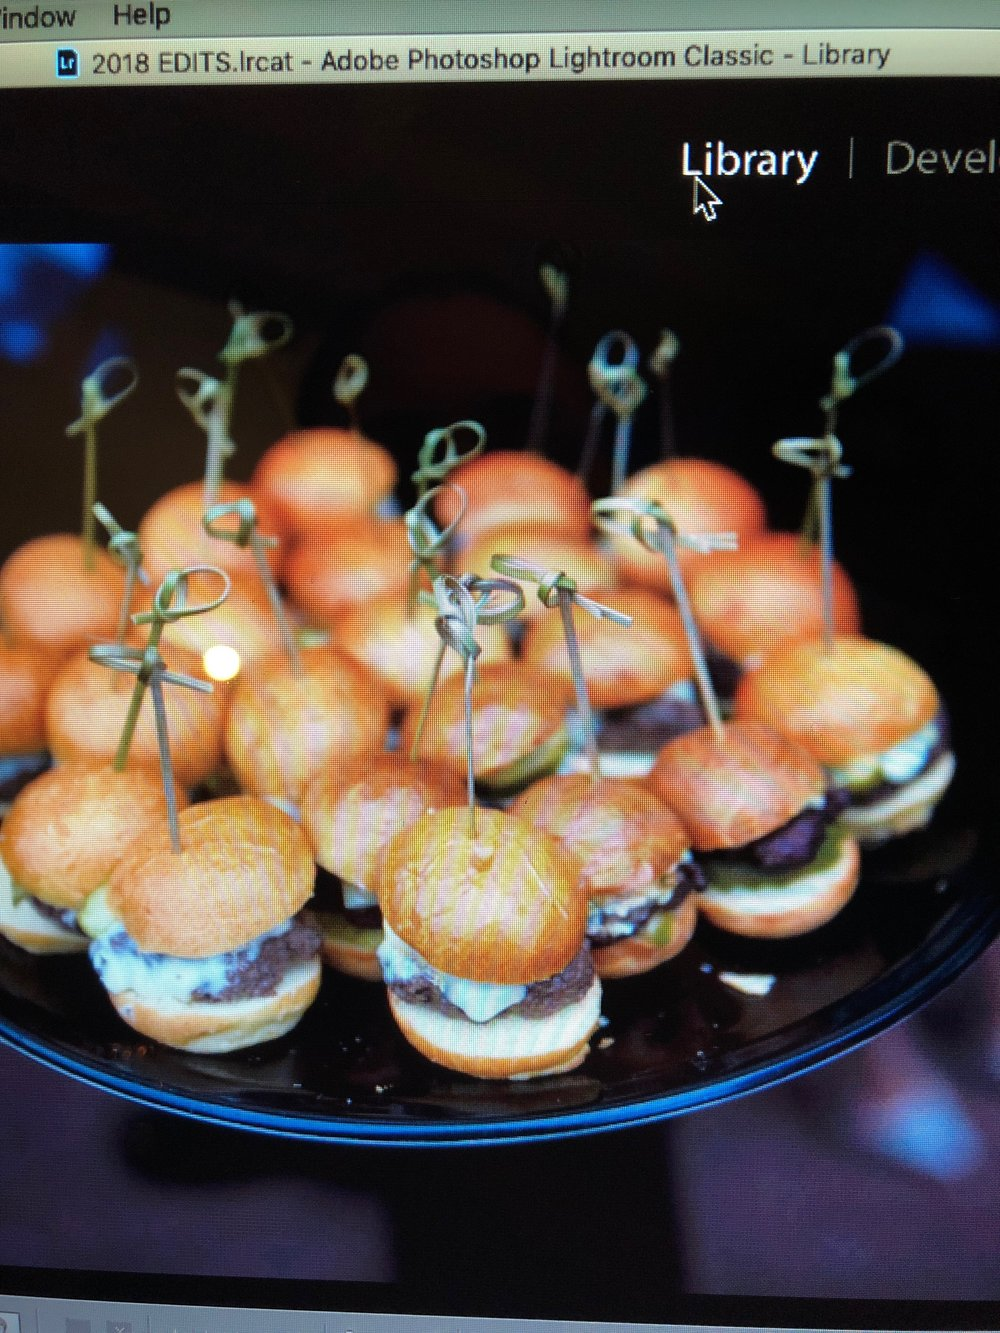 Side Note - - The Waterman Grille served mini-sliders. These burgers are the best burger bites on the face of the planet! One fell on the ground and was smashed. I cried real tears over that poor crushed mini burger!